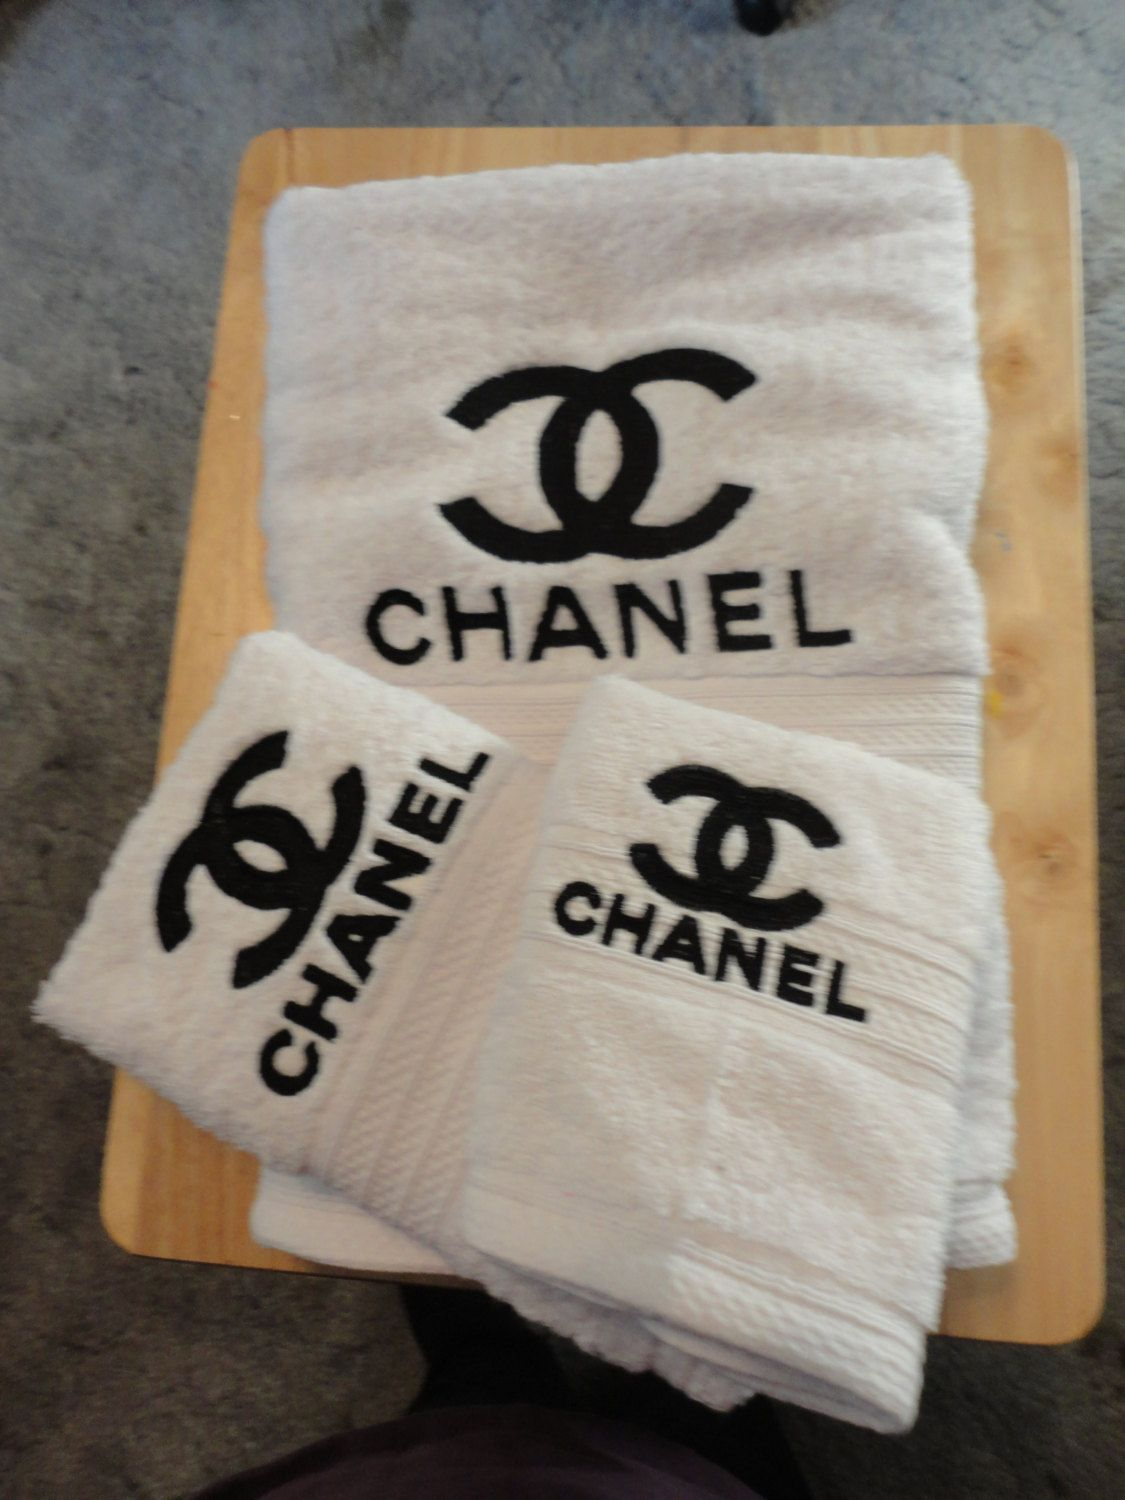 Chanel Inspired Embroidered Bath Towel Set Bath Towel Hand Towel And Washcloth Shown On White Towel With Black W Chanel Decor Chanel Room Chanel Bedroom